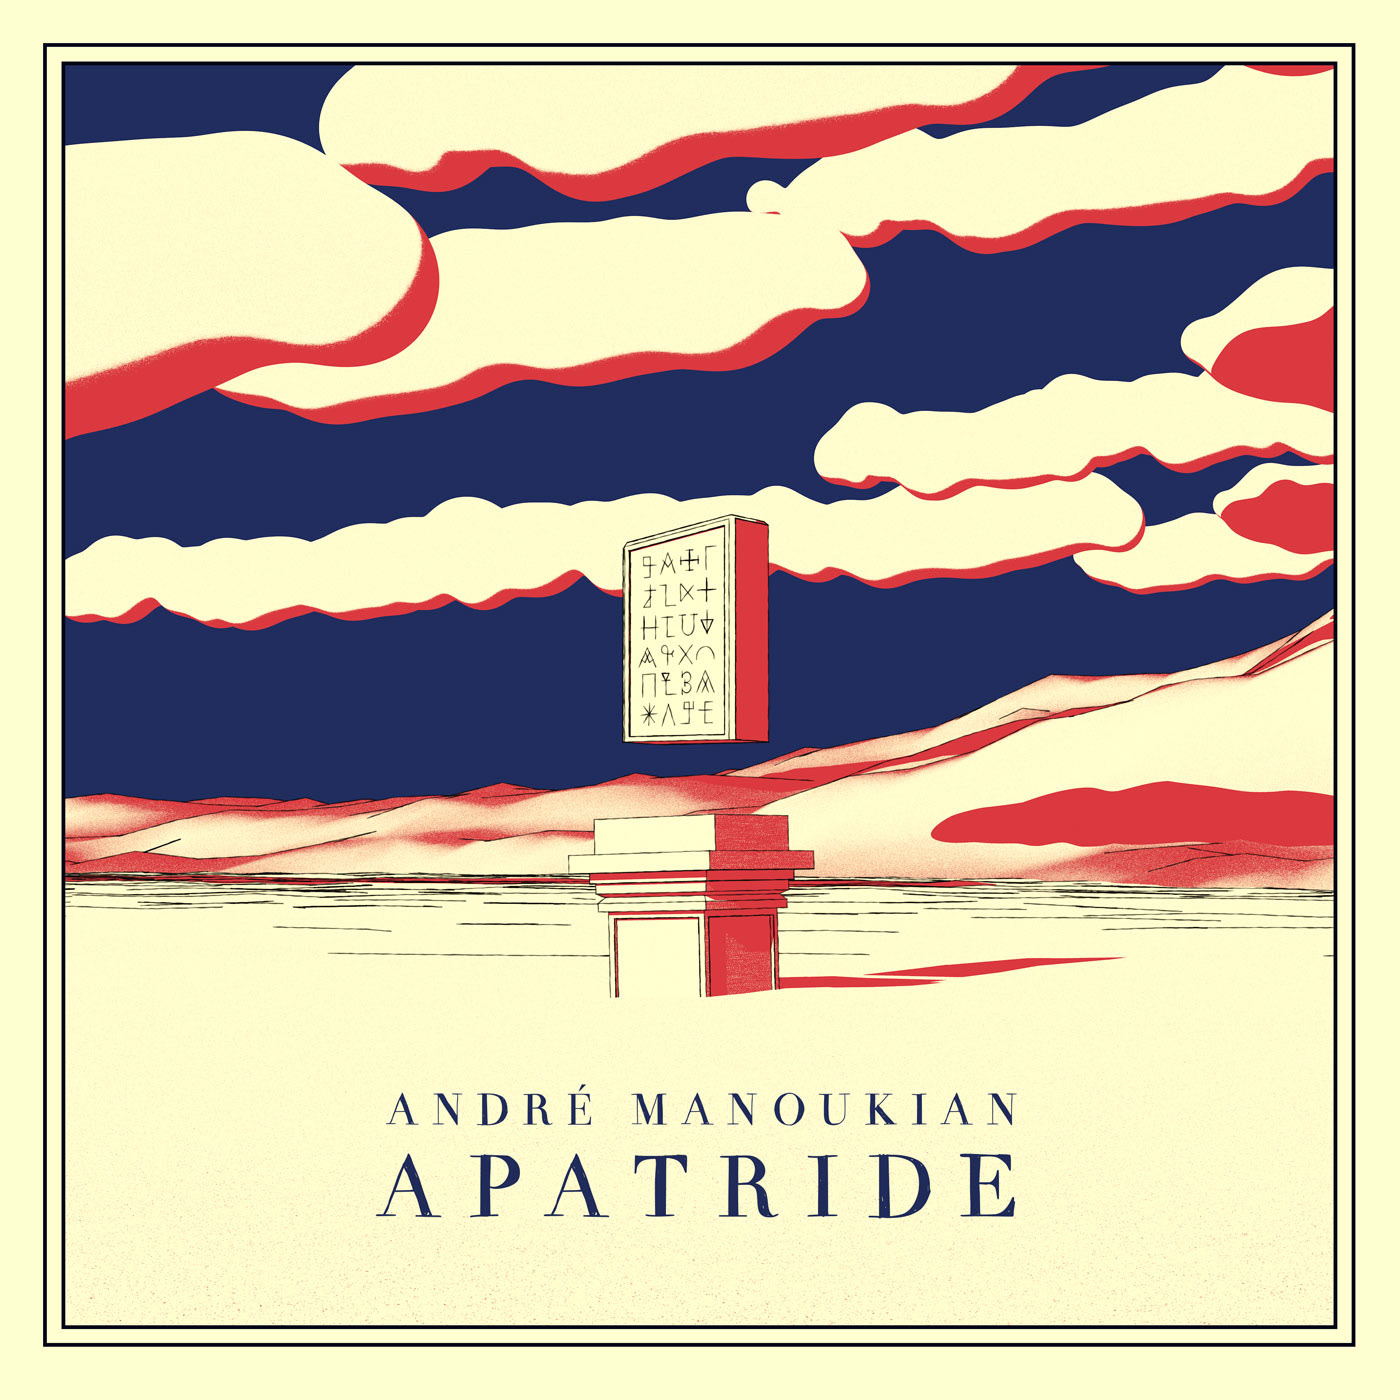 andre manoukian apatride cover